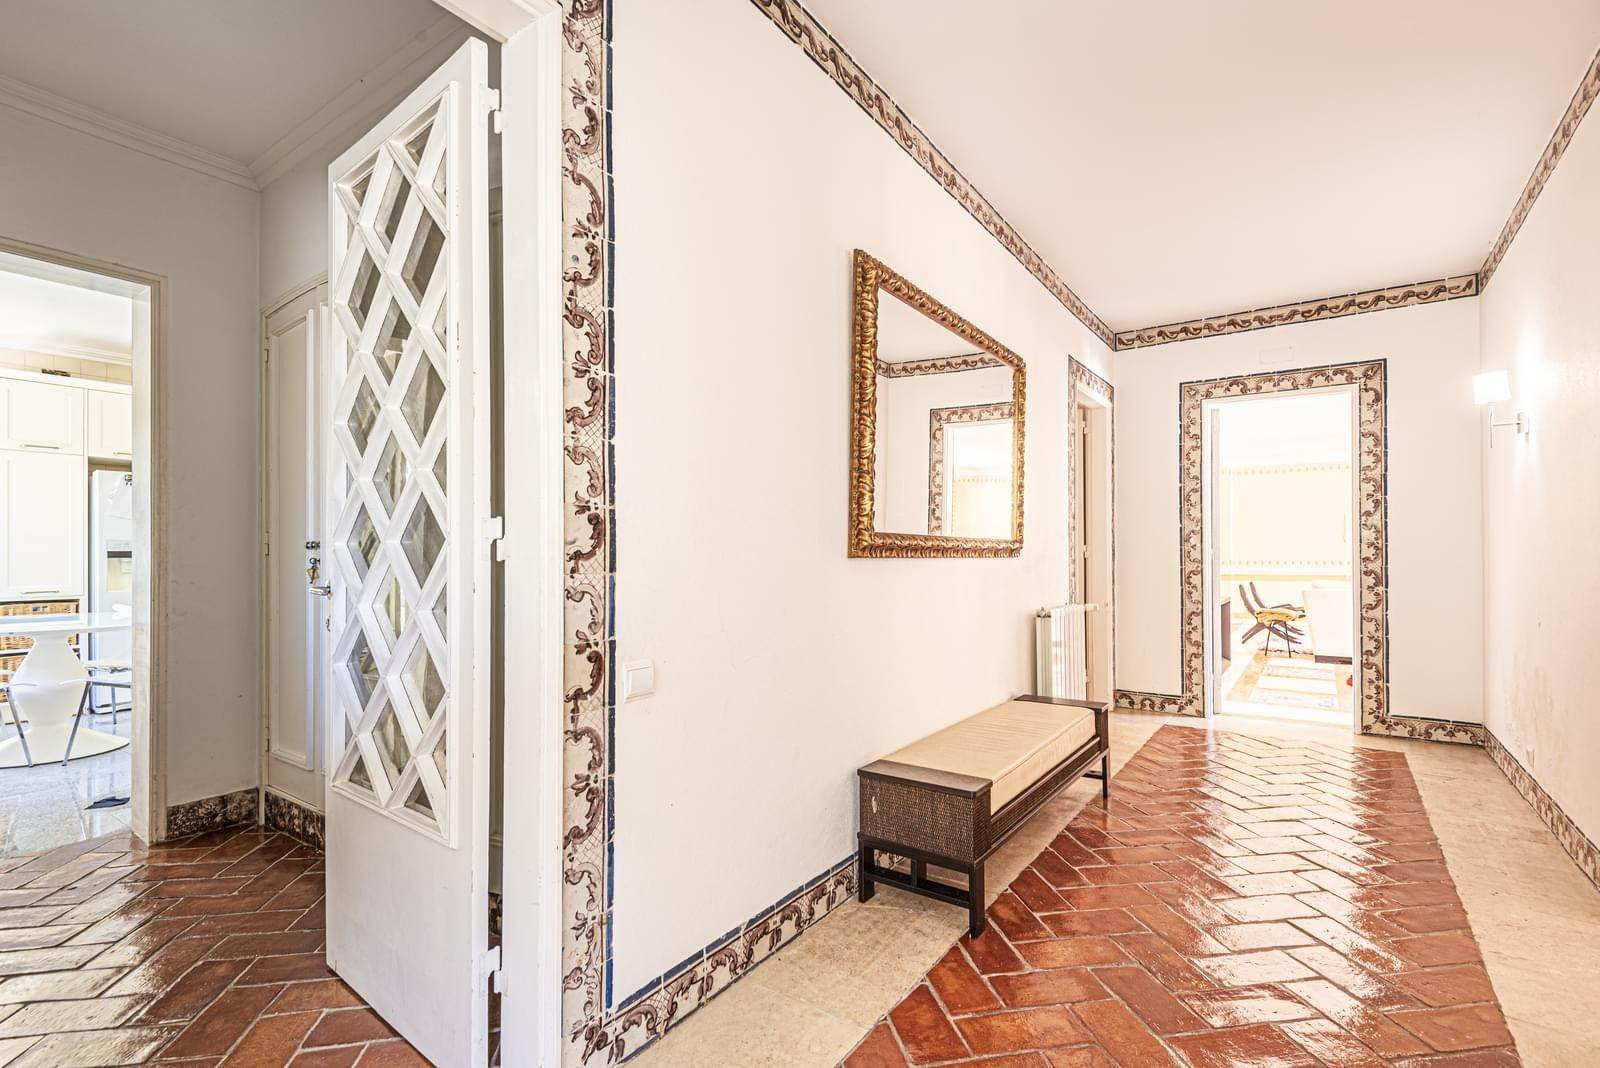 11. Villa/Townhouse for Sale at 9 bedroom villa, located in a quiet area in Cascais, only 8 minutes away, on foot, to the centre of Cascais.The villa is... Cascais, Portugal